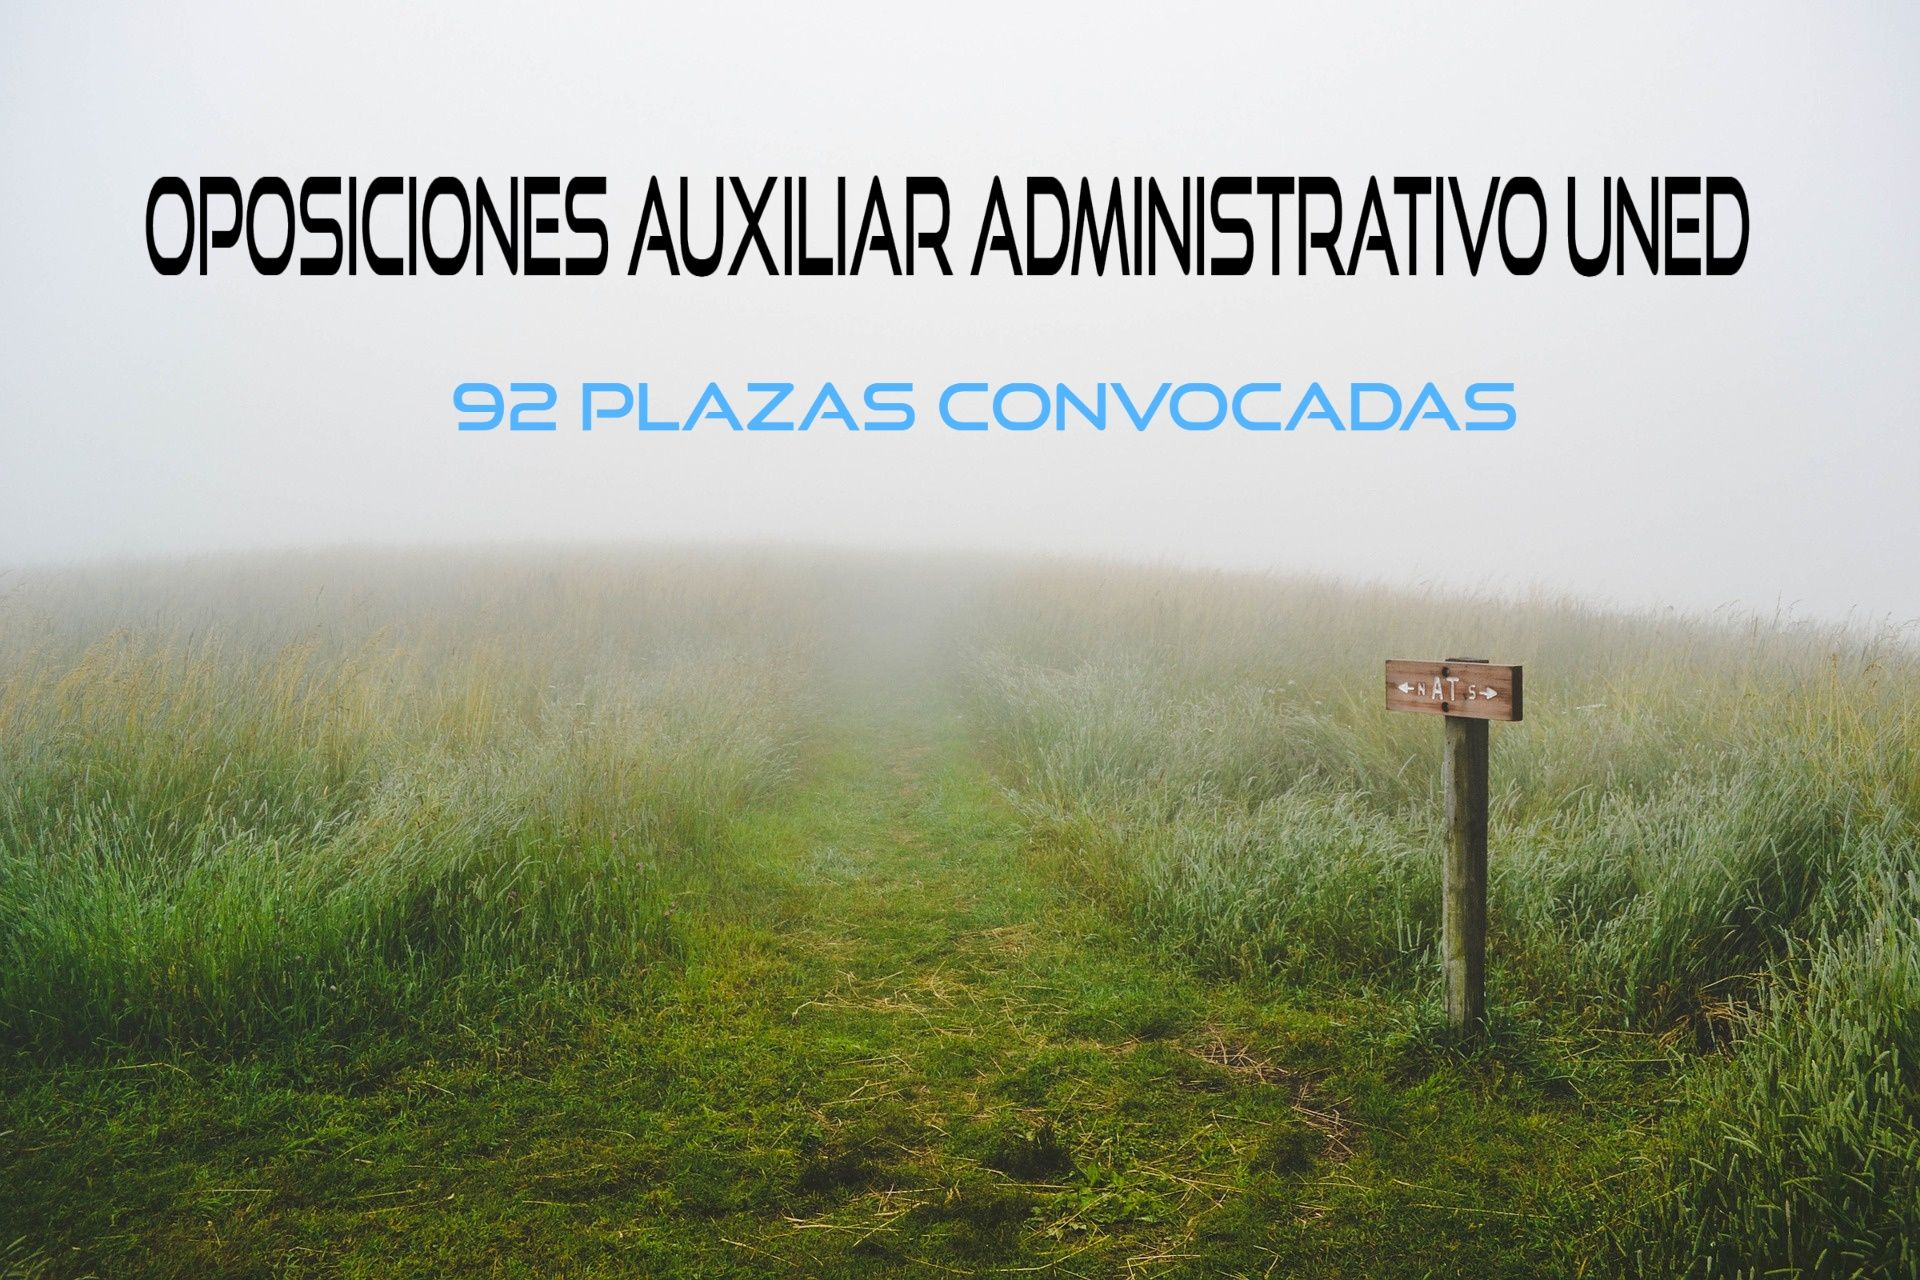 auxiliar administrativo uned